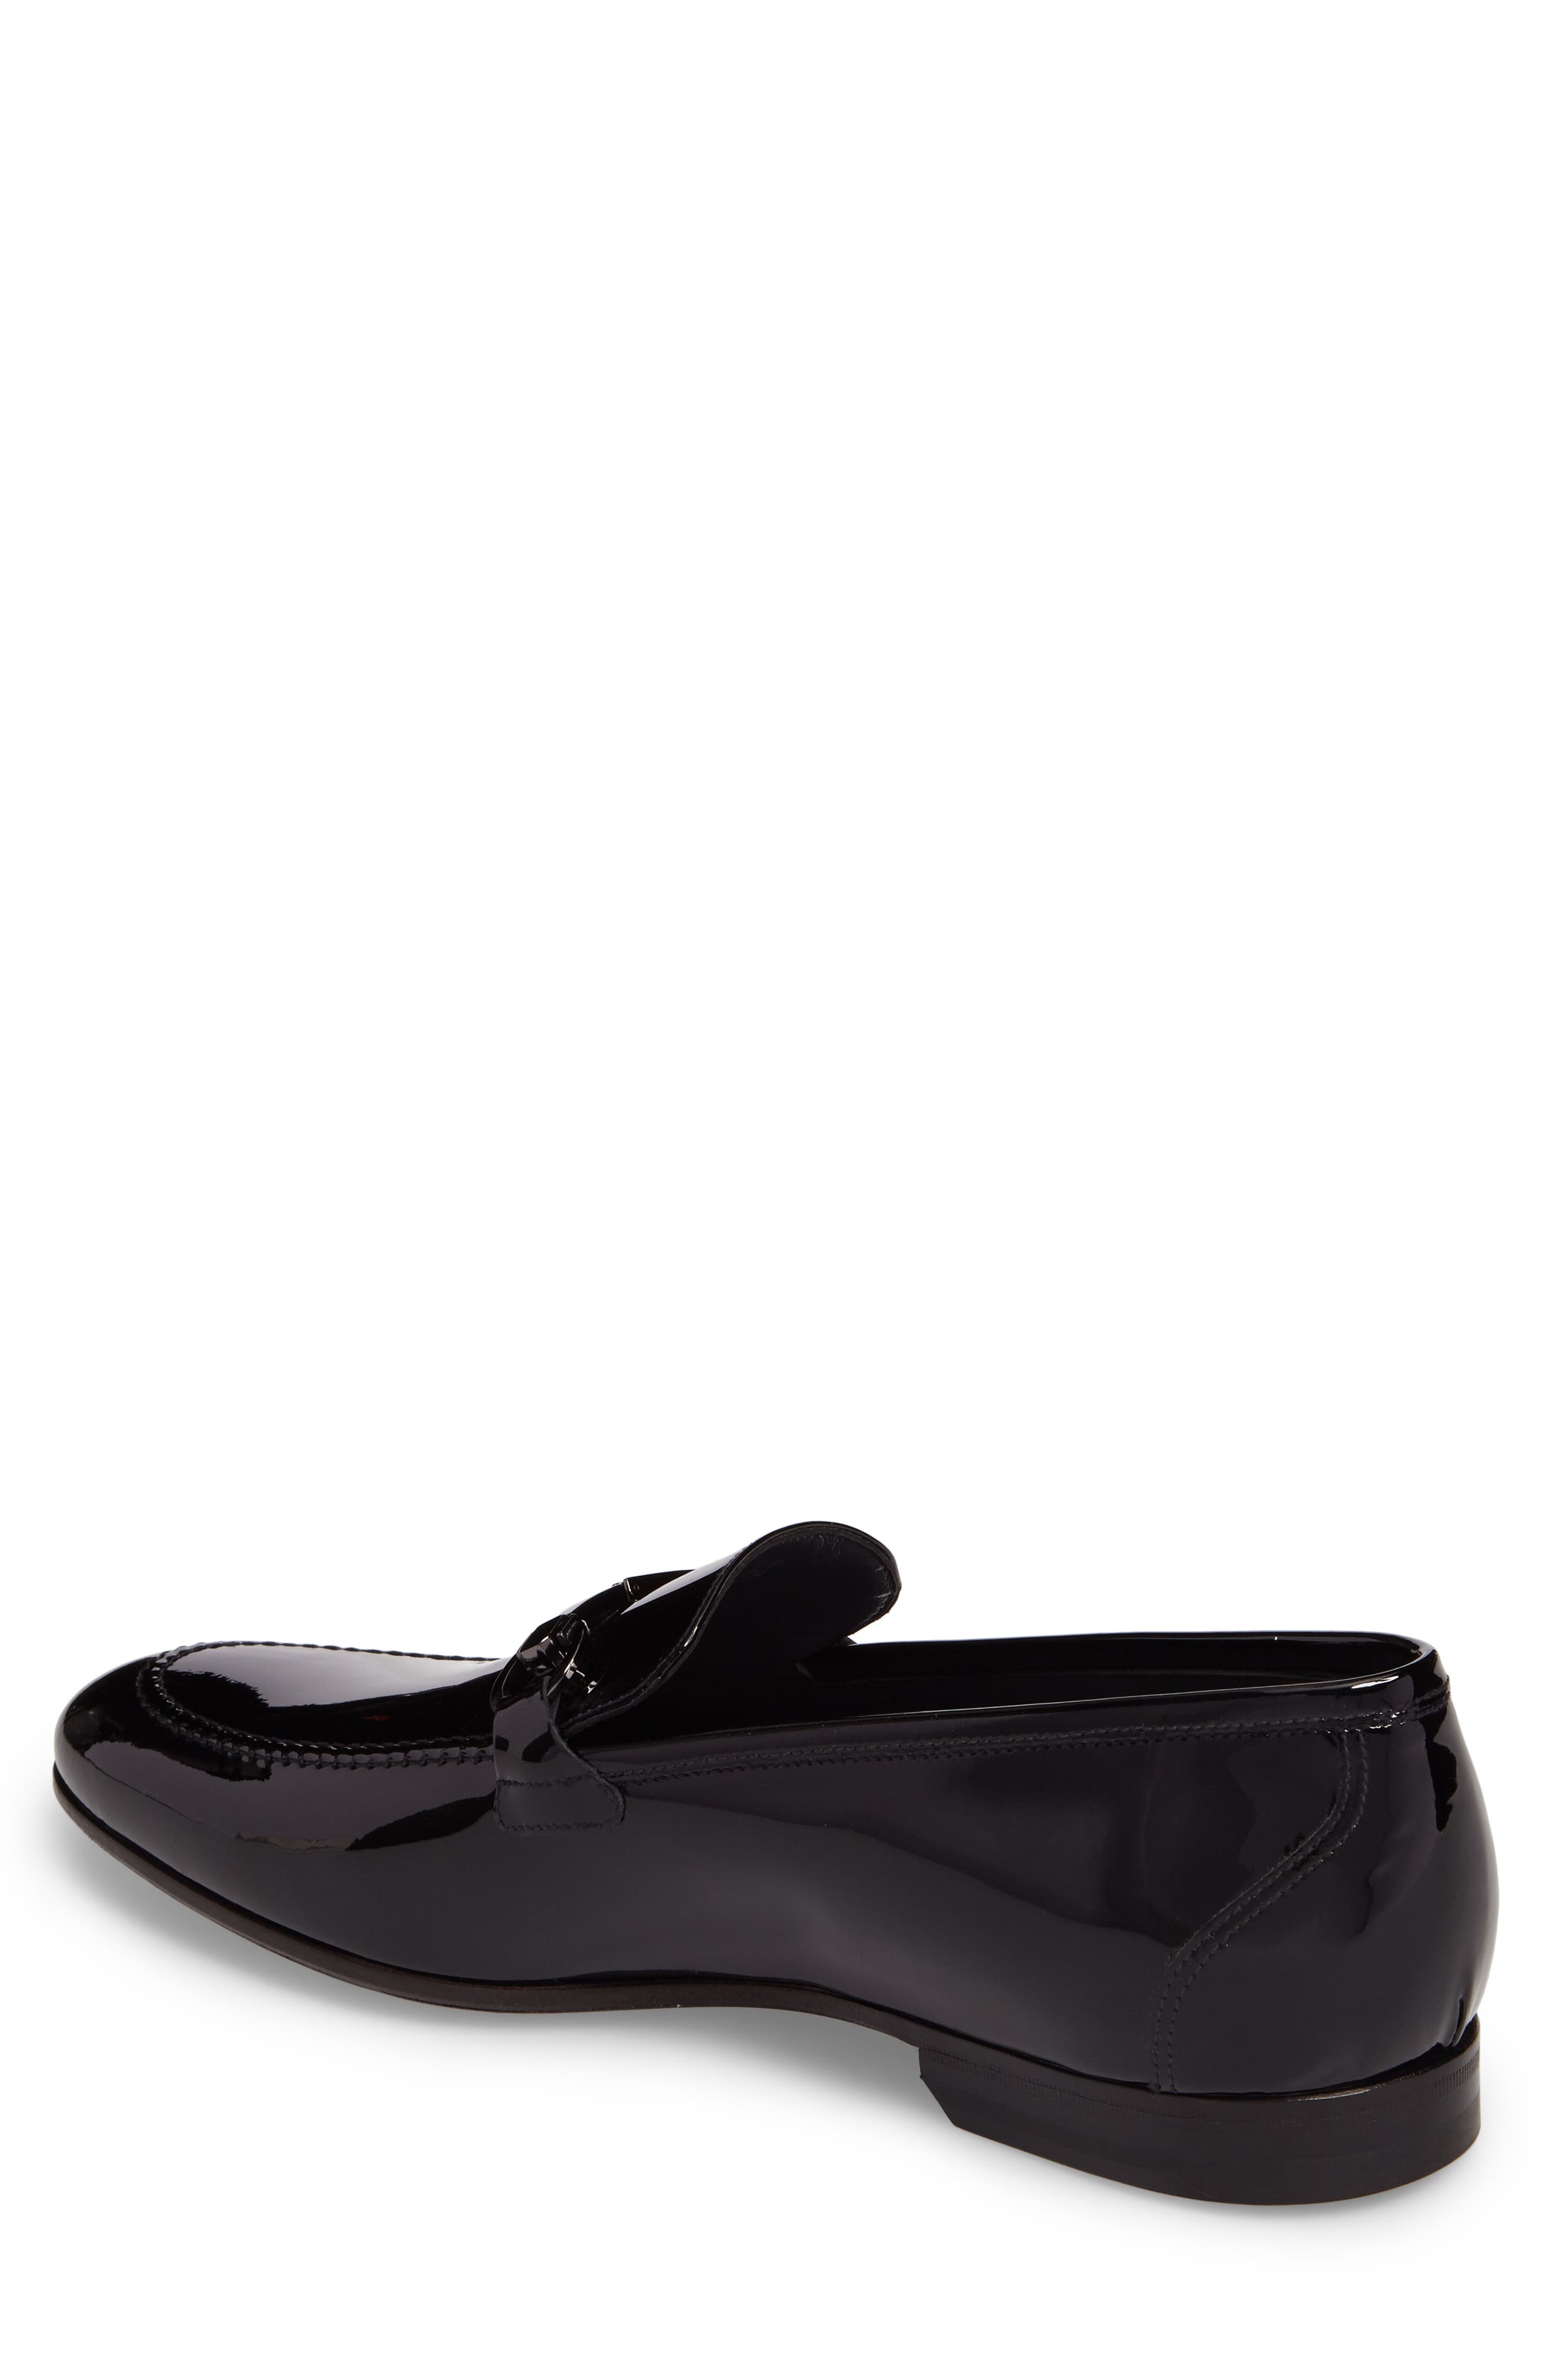 Brianza Bit Loafer,                             Alternate thumbnail 4, color,                             Black Patent Leather